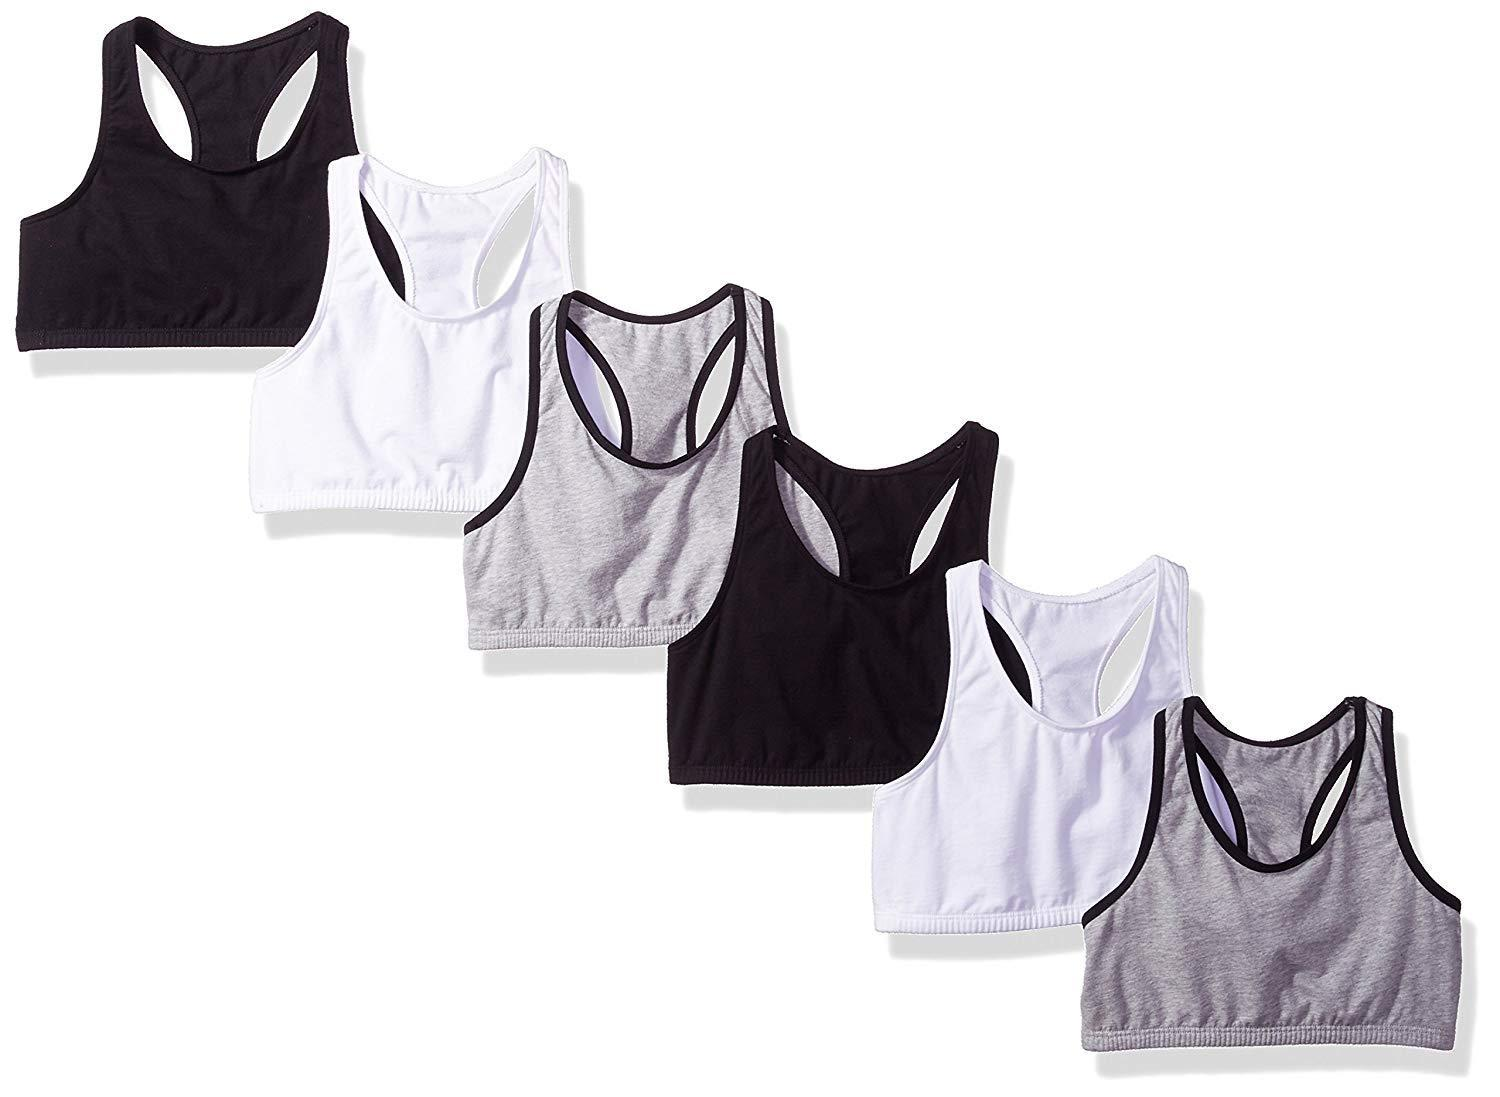 6-Pack Big Girls' Fruit of the Loom Cotton Built-Up Sports Bra